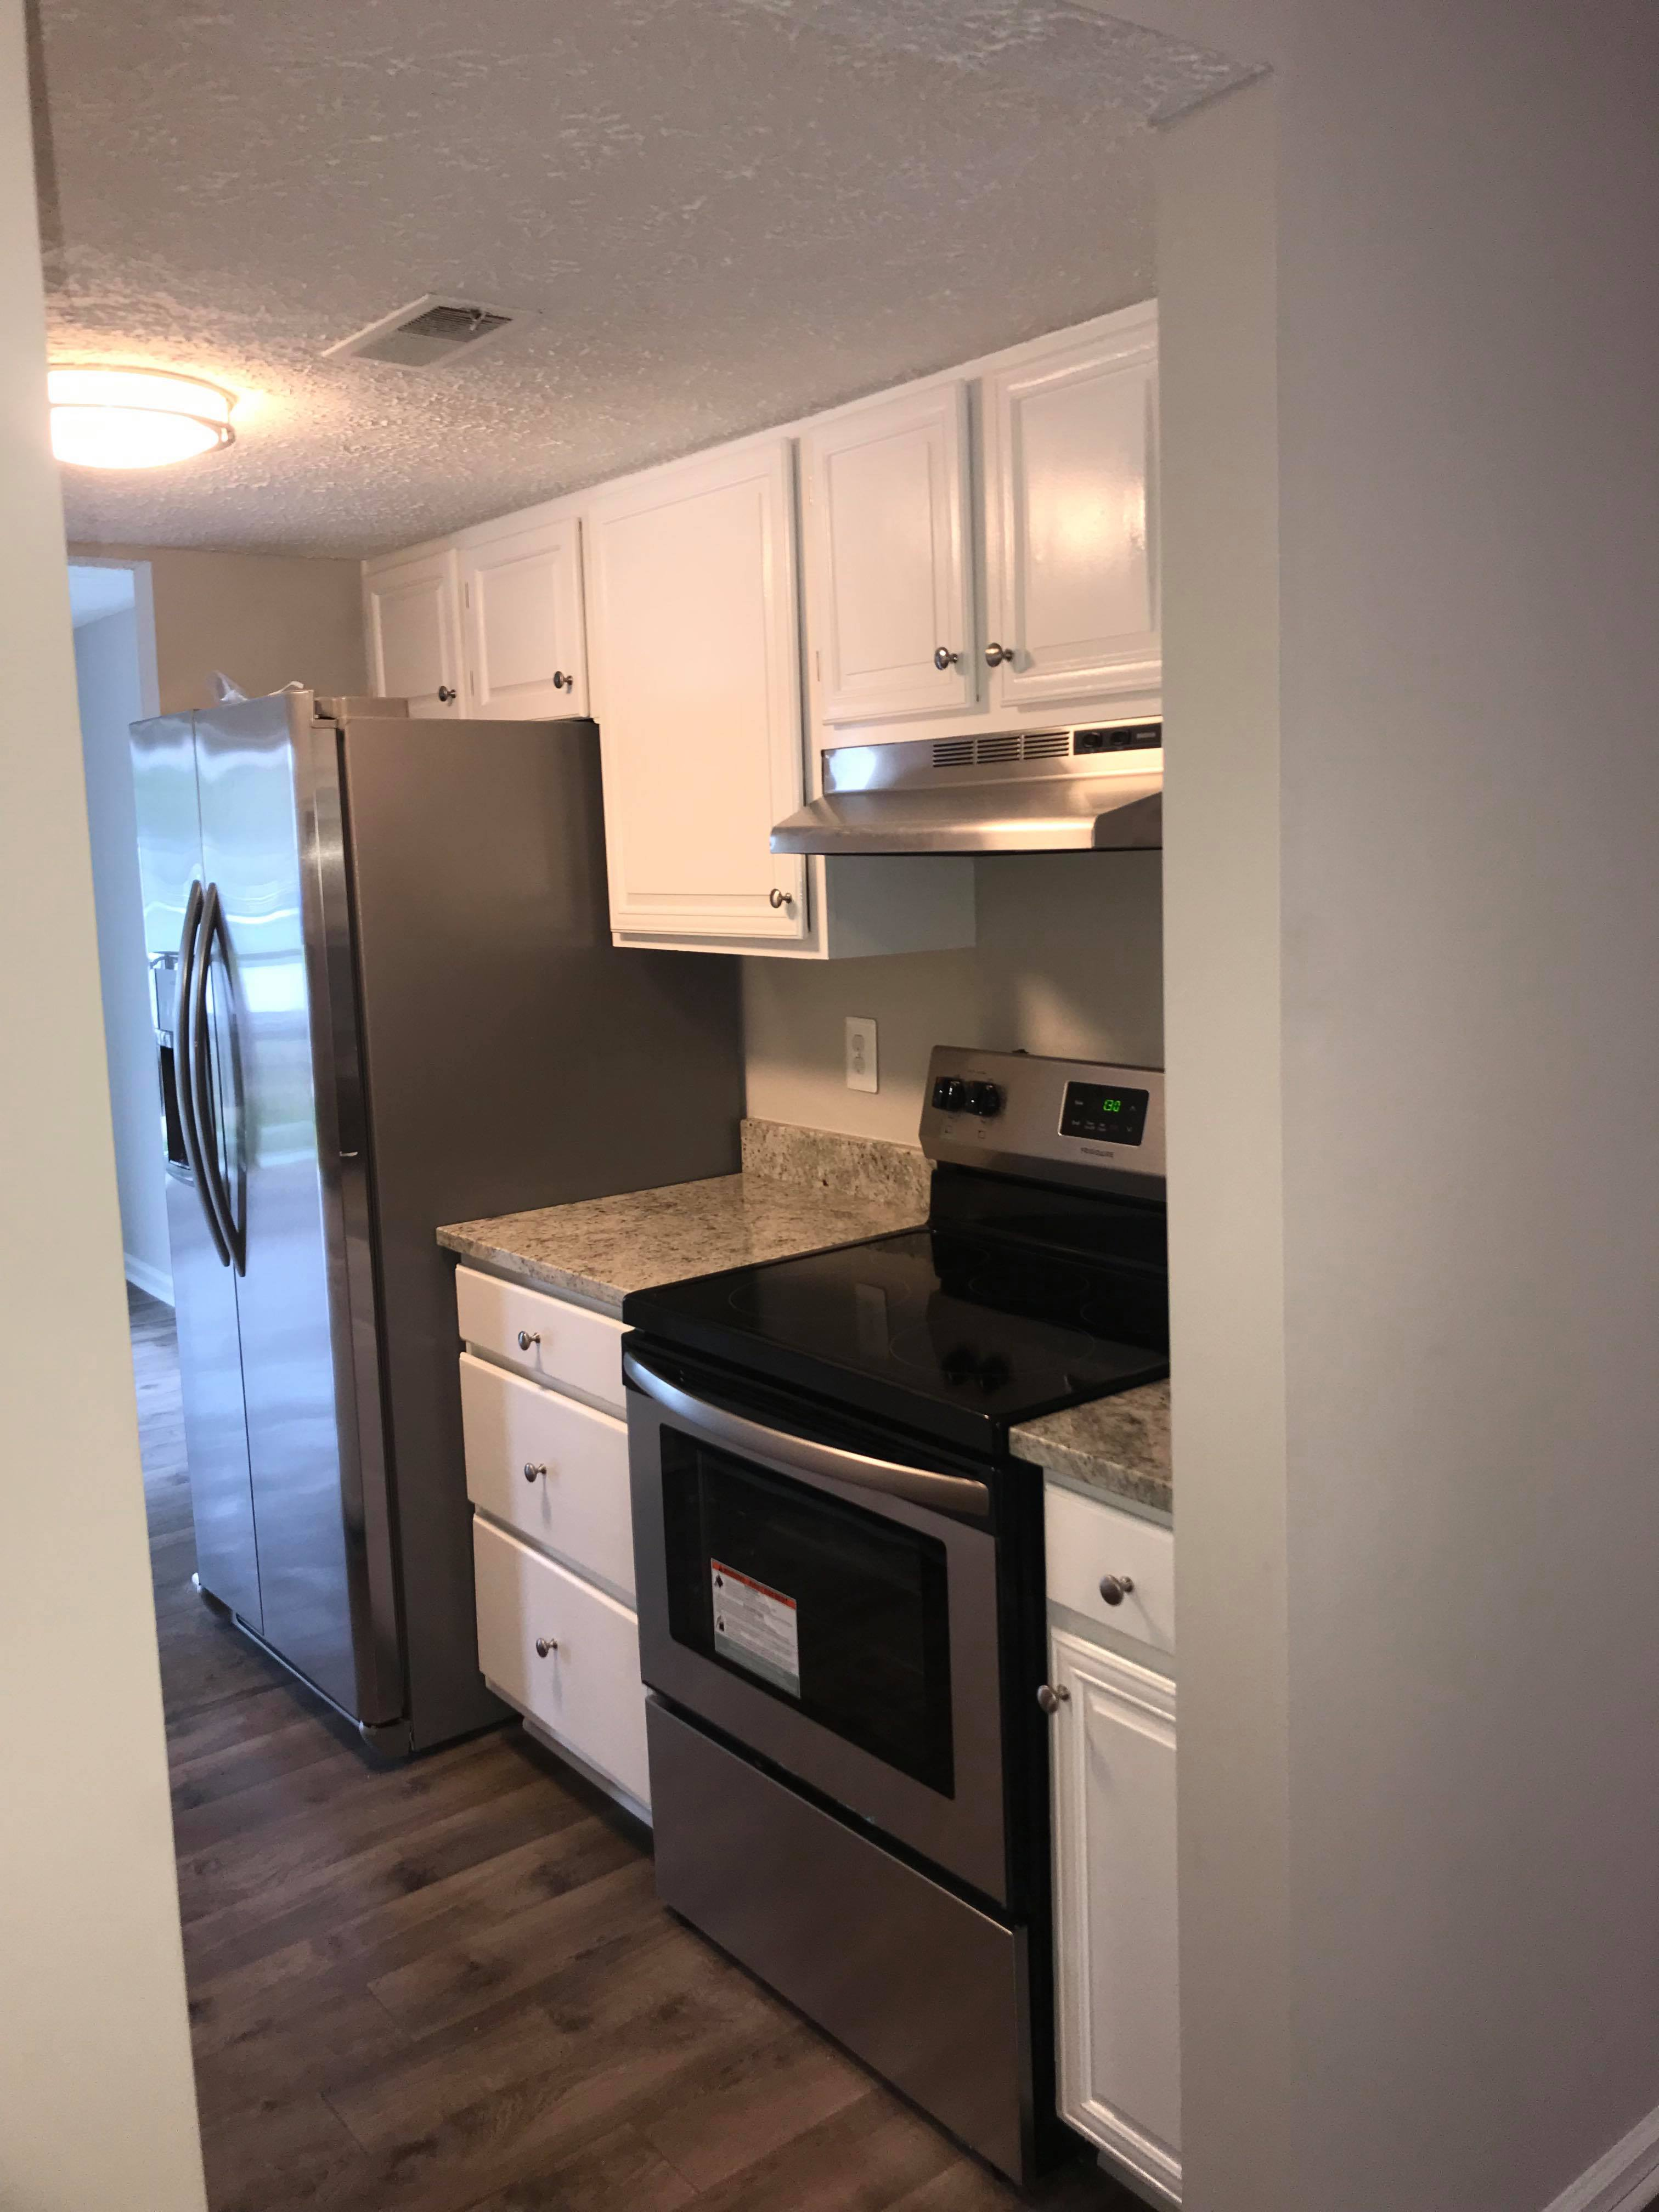 Kitchen Remodeling Cost | AC Painting & Remodeling serving ...